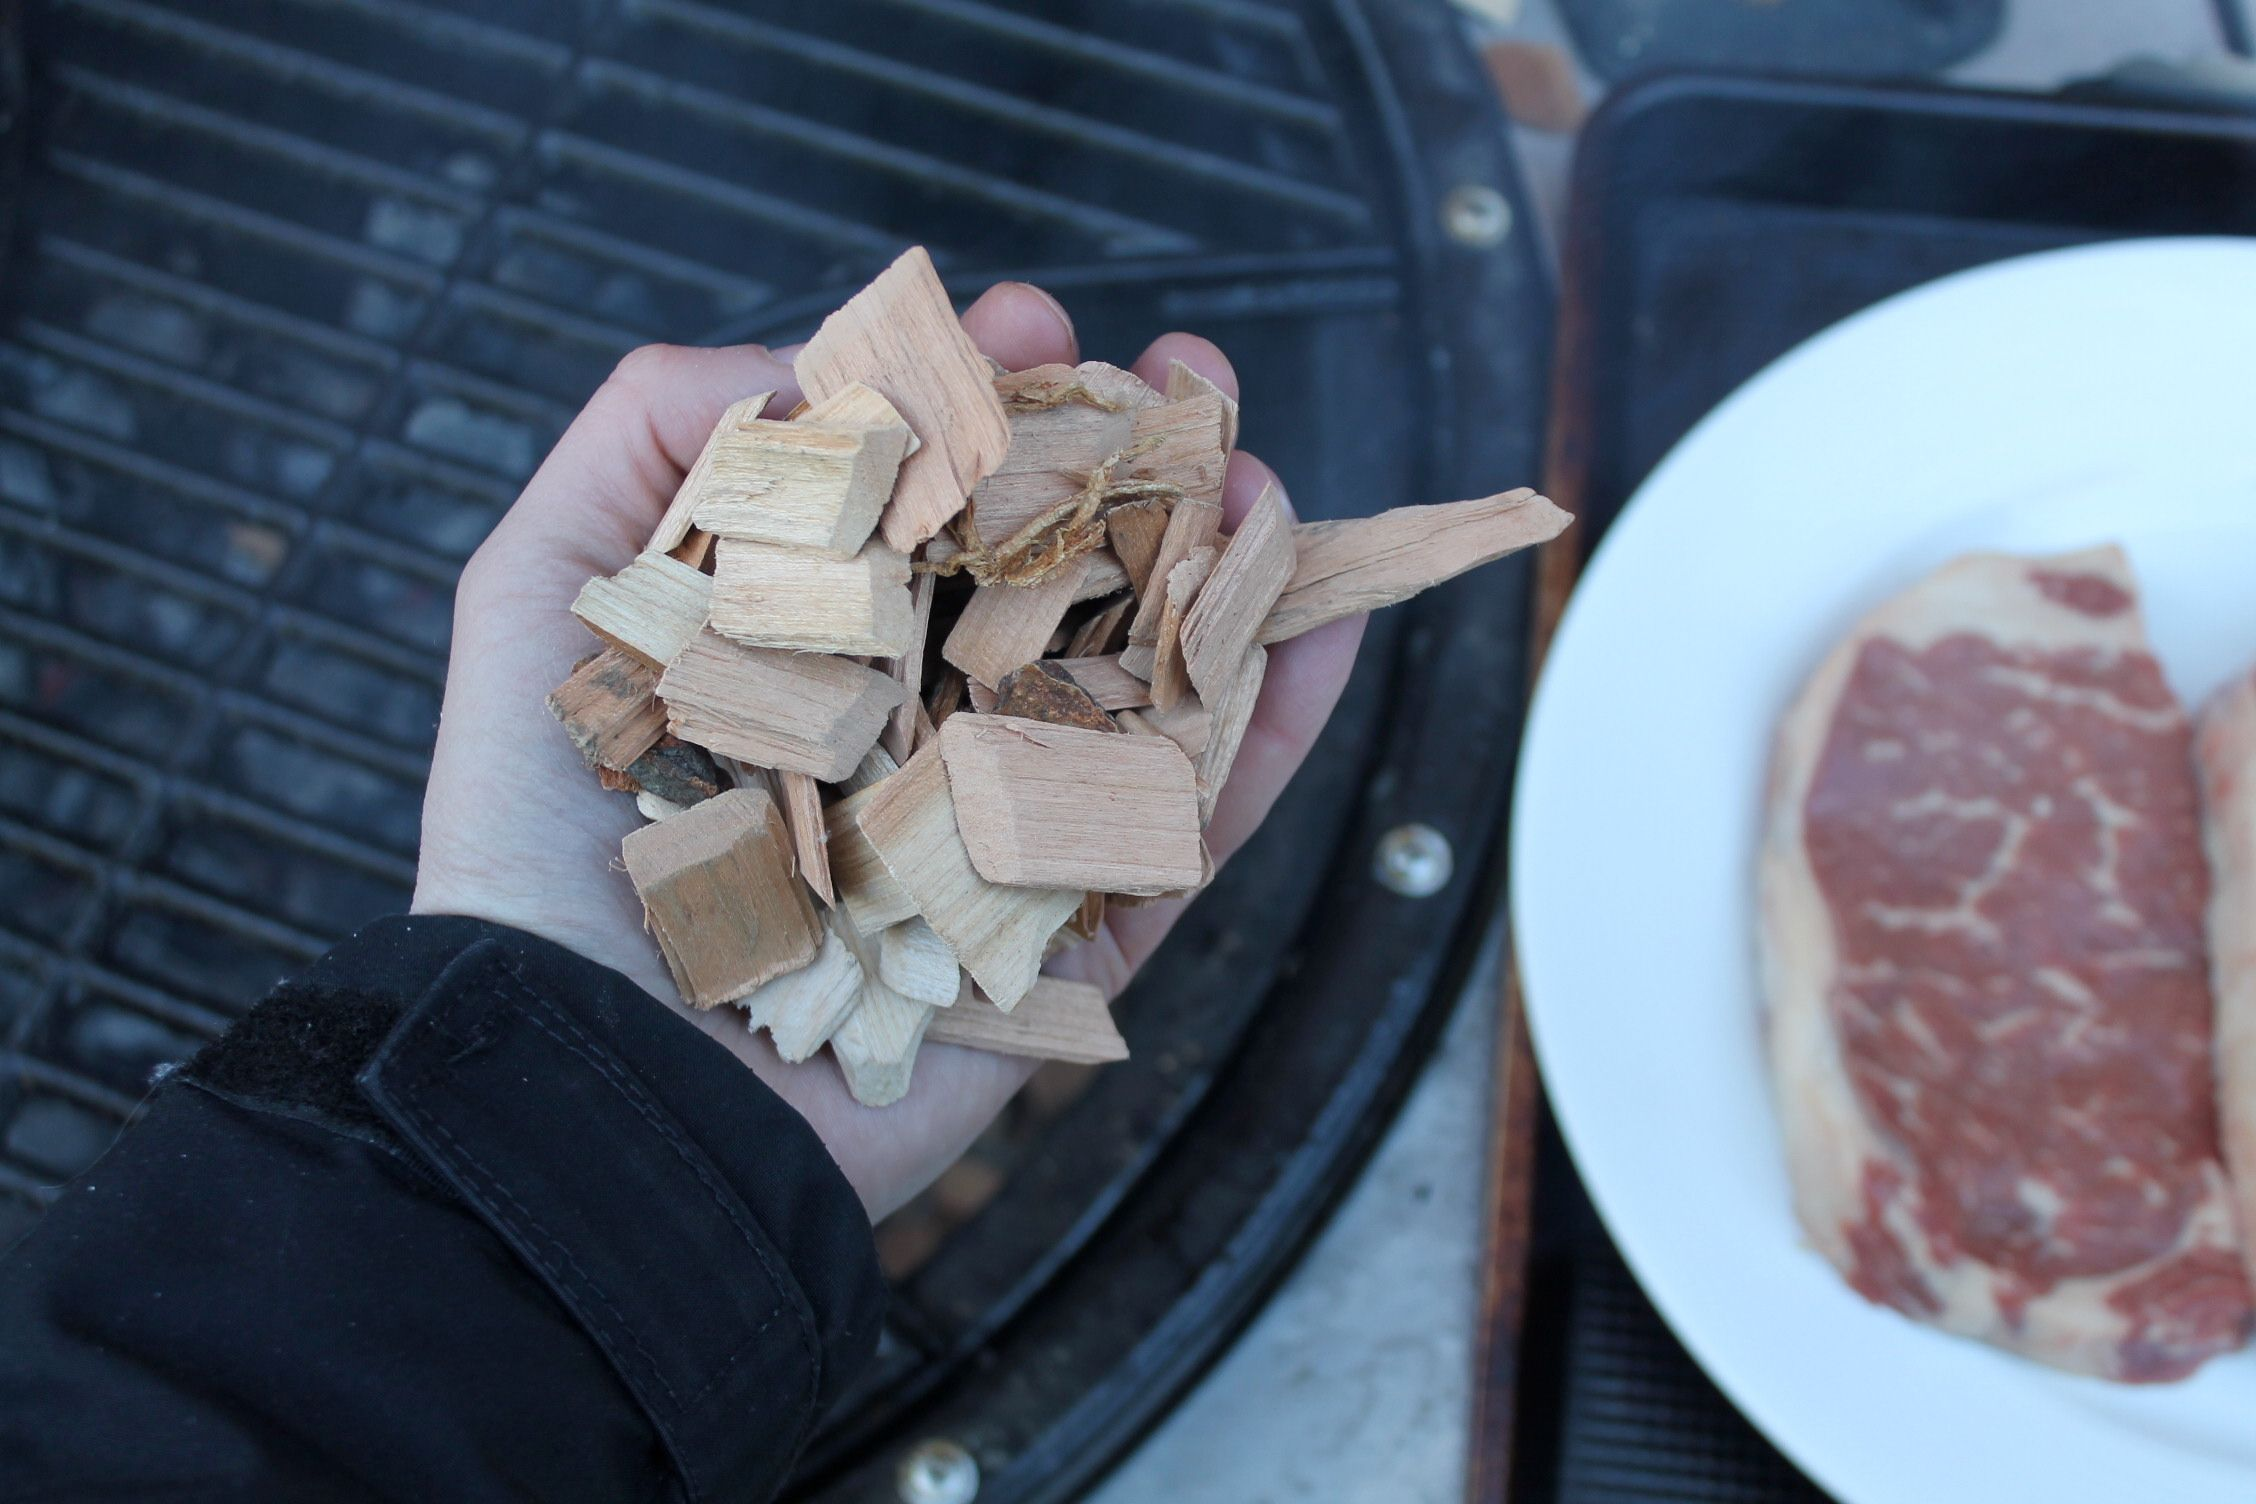 Even Most Expert Grillmasters Forget This One Easy Trick for More Flavor